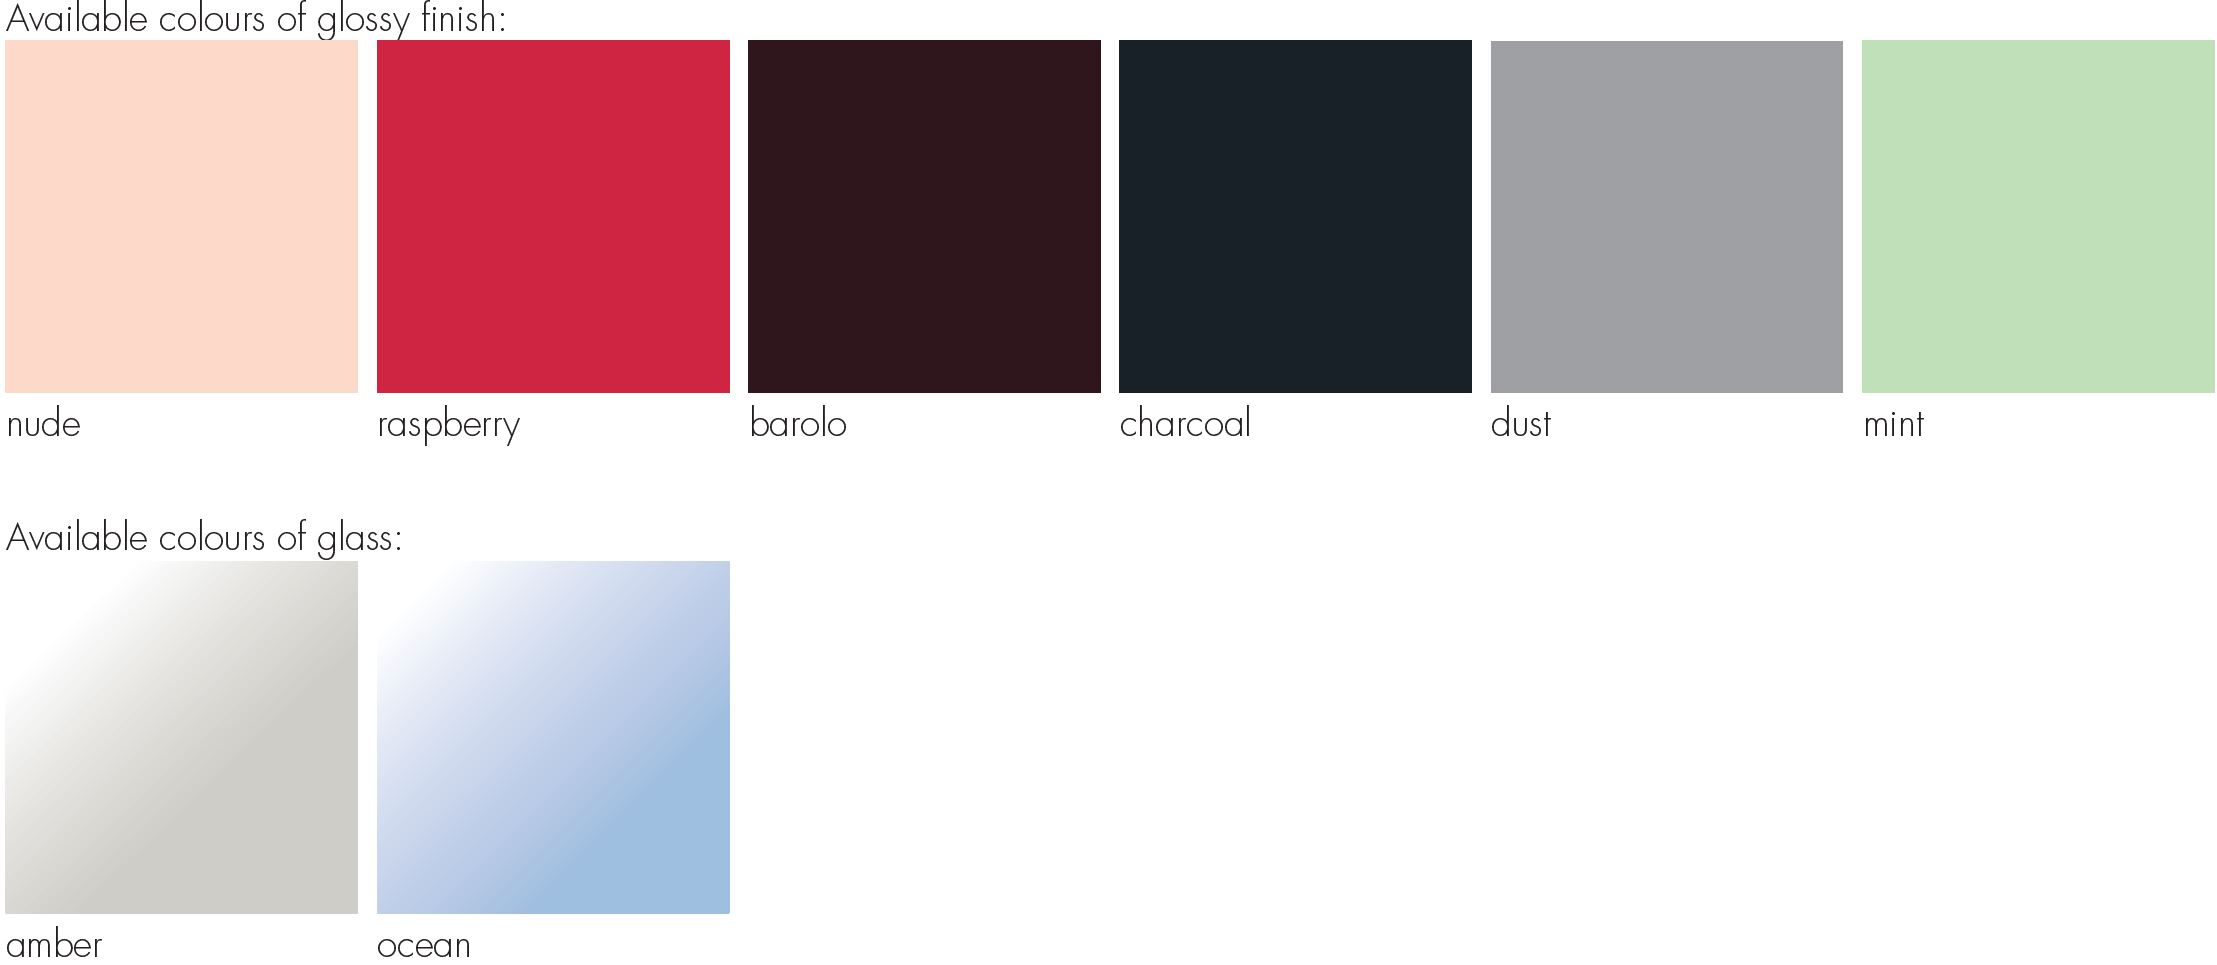 Tilda Table colours